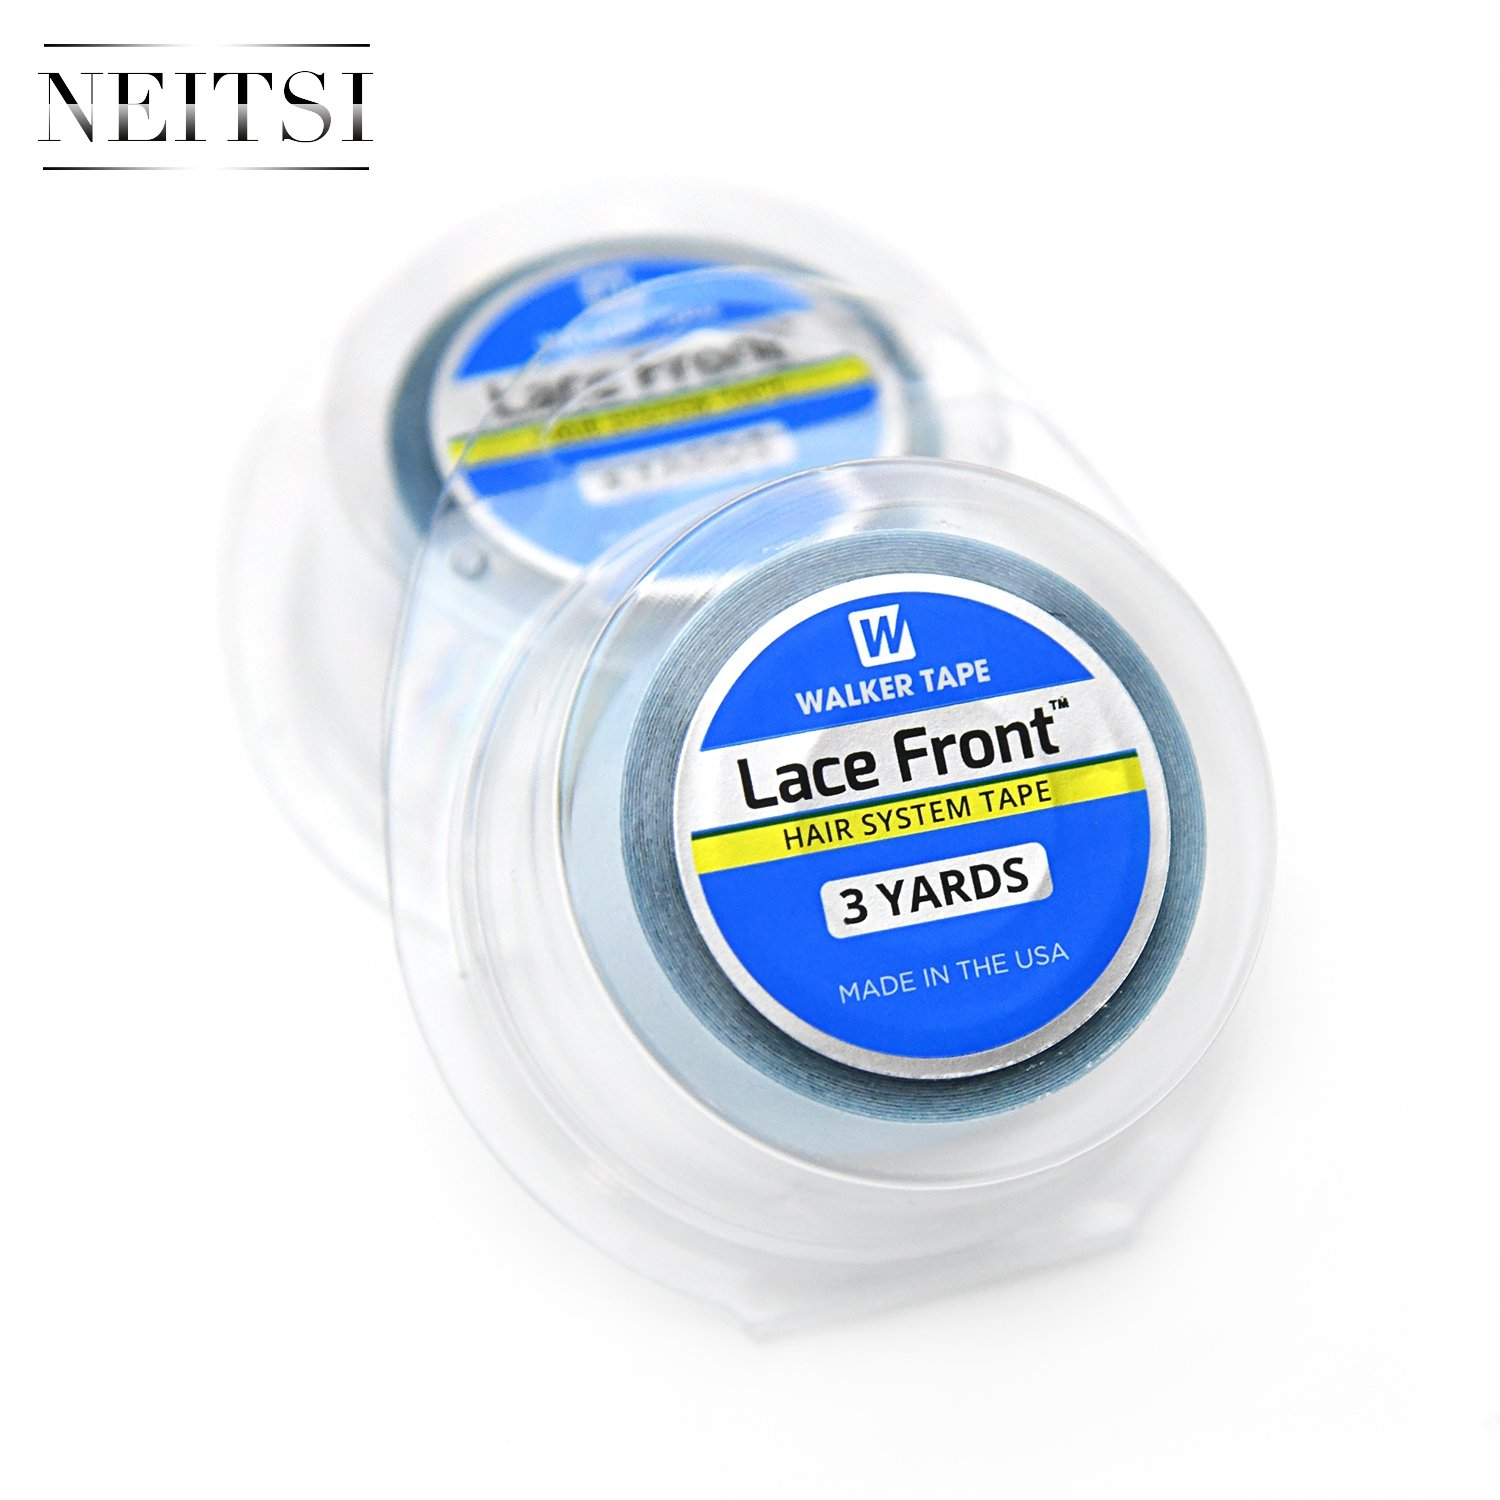 Neitsi 1Roll 3/4 x 3 Yard Roll Bonding Double Sided Tape Lace Front Roll for Hair Extensions Wigs LTD